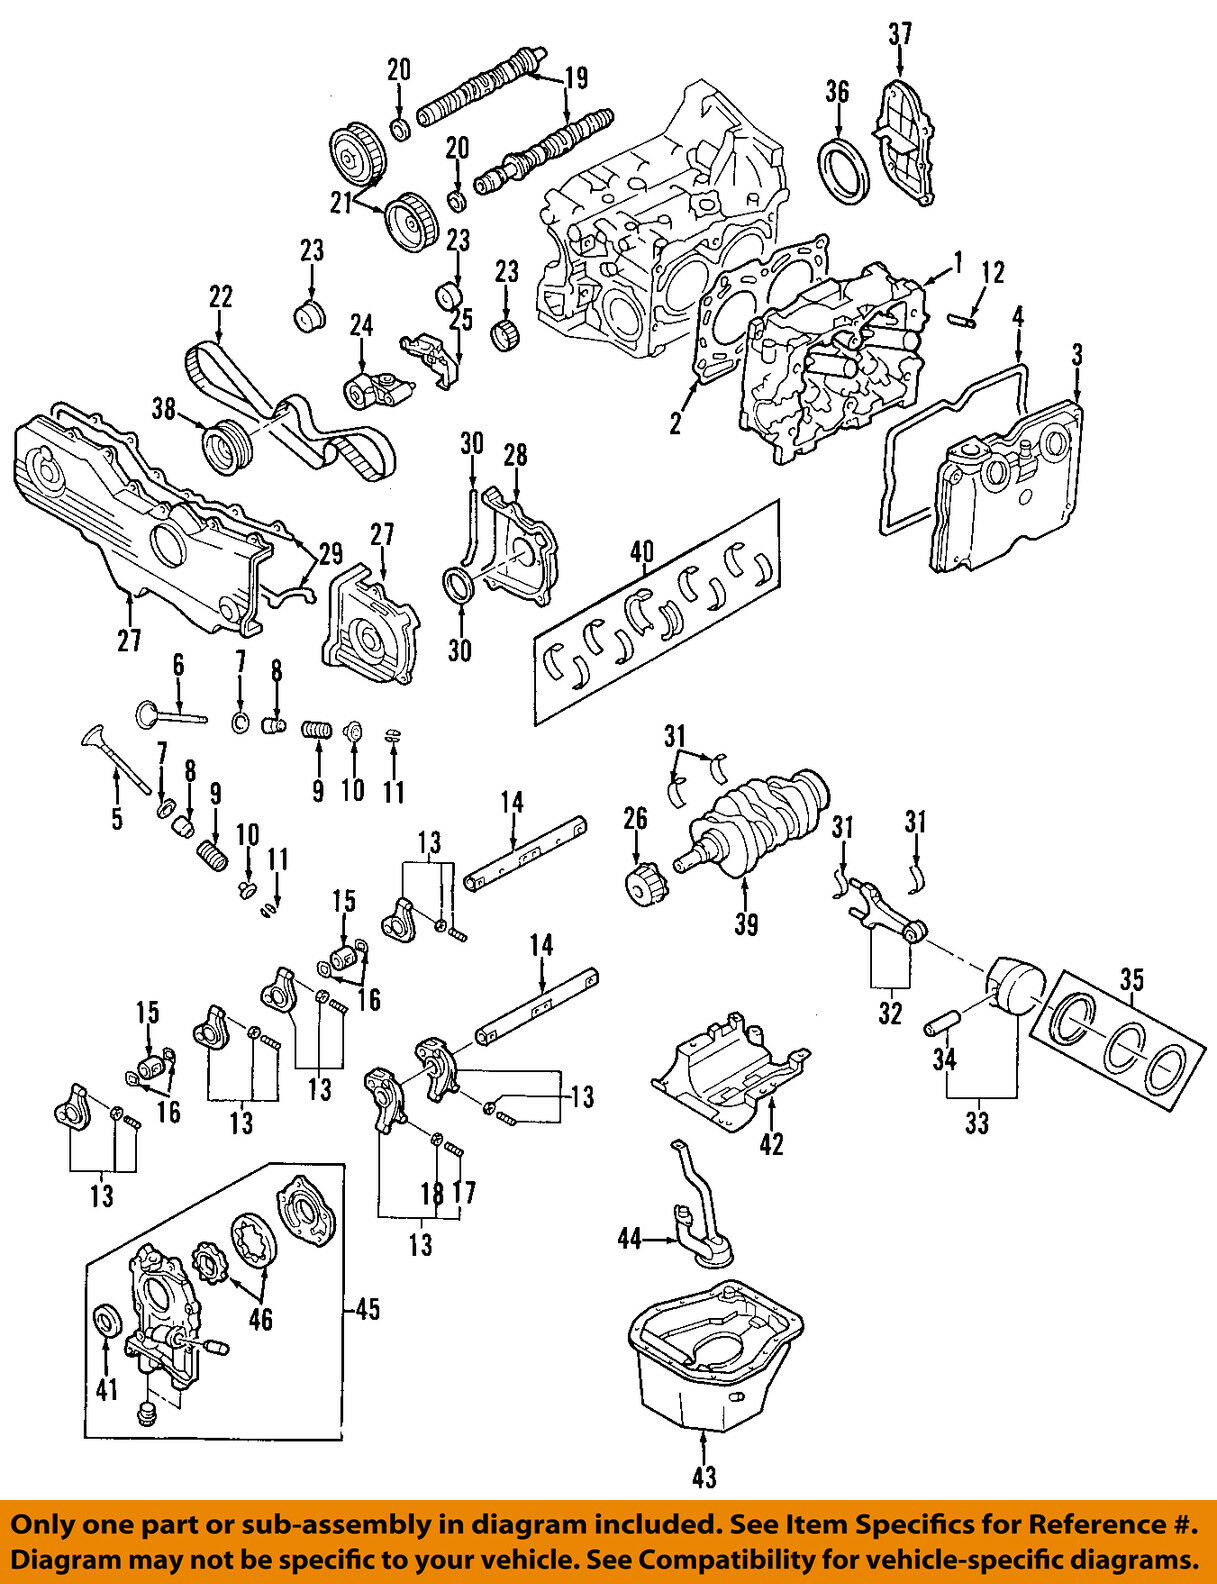 Subaru Oem 04 11 Impreza Engine Timing Camshaft Cam Gear 13017aa042 2012 Diagram 1 Of 1only Available